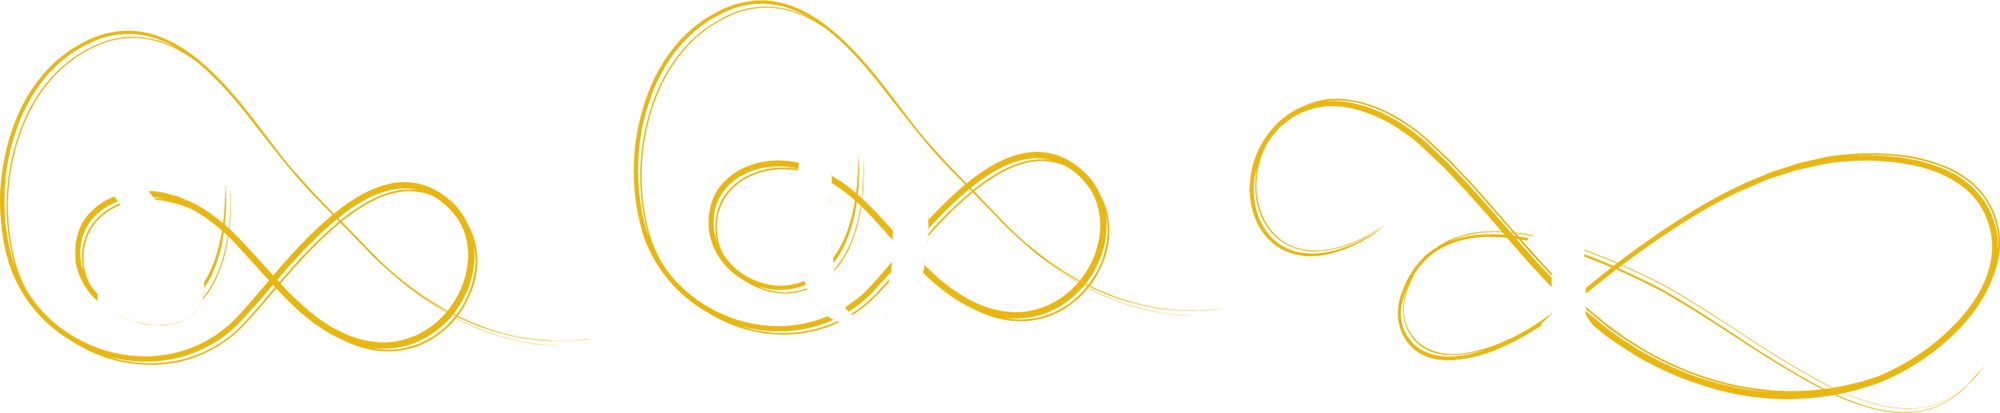 Connolly-Music-String-Ovation-Logo.png